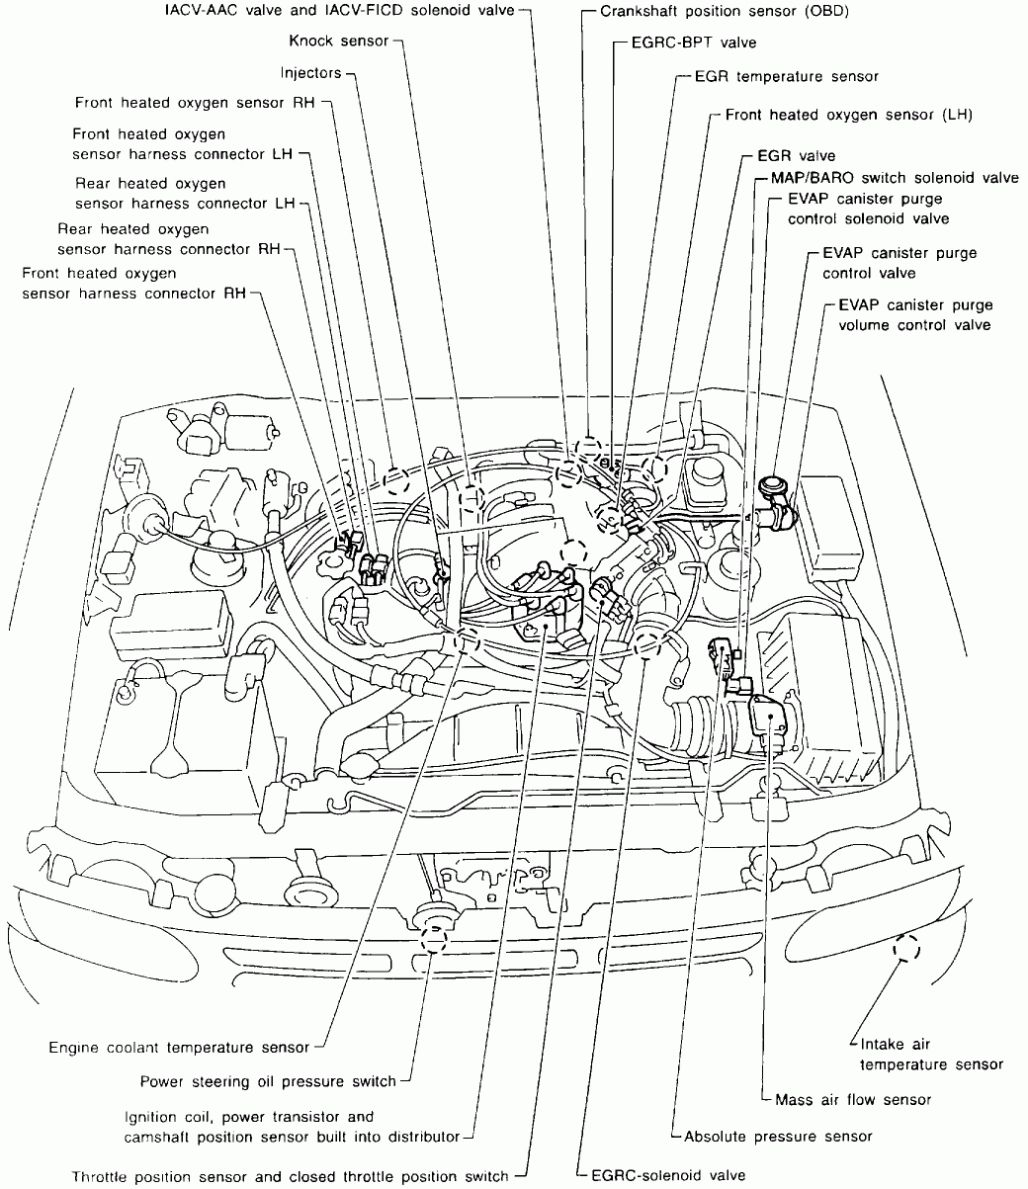 [SCHEMATICS_48IS]  nissan engine diagram wiring diagrams tar 1997 Nissan Altima Exhaust System  Diagram 2001 nissan engine diagram wiring diagram … | Nissan pathfinder,  Diagram, Nissan | 96 Nissan Maxima Engine Diagram |  | Pinterest